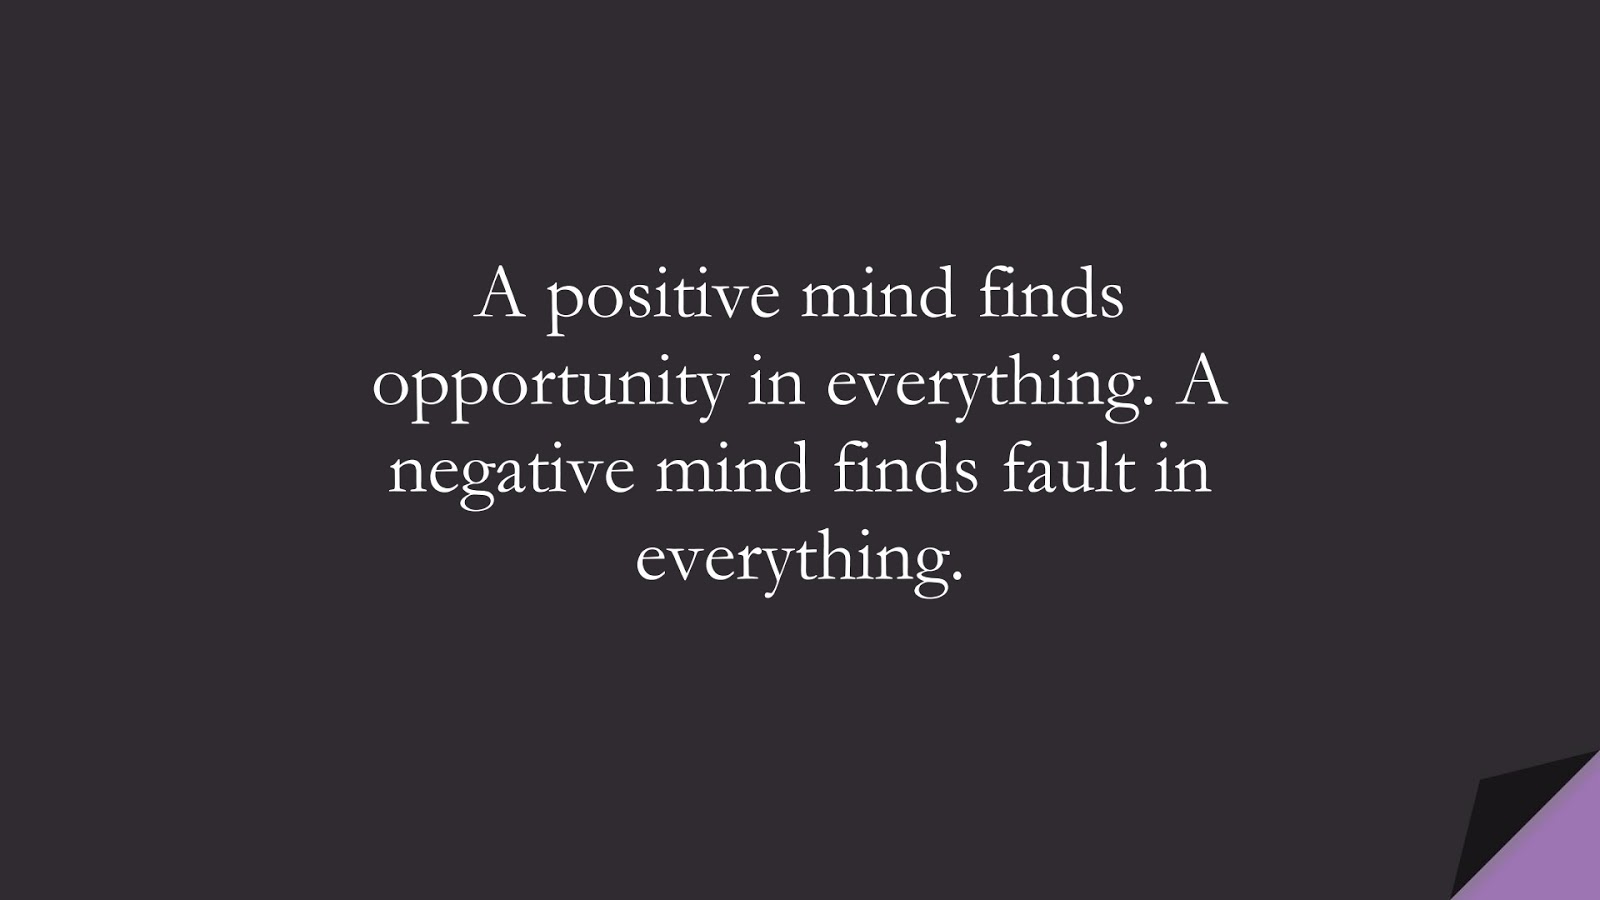 A positive mind finds opportunity in everything. A negative mind finds fault in everything.FALSE